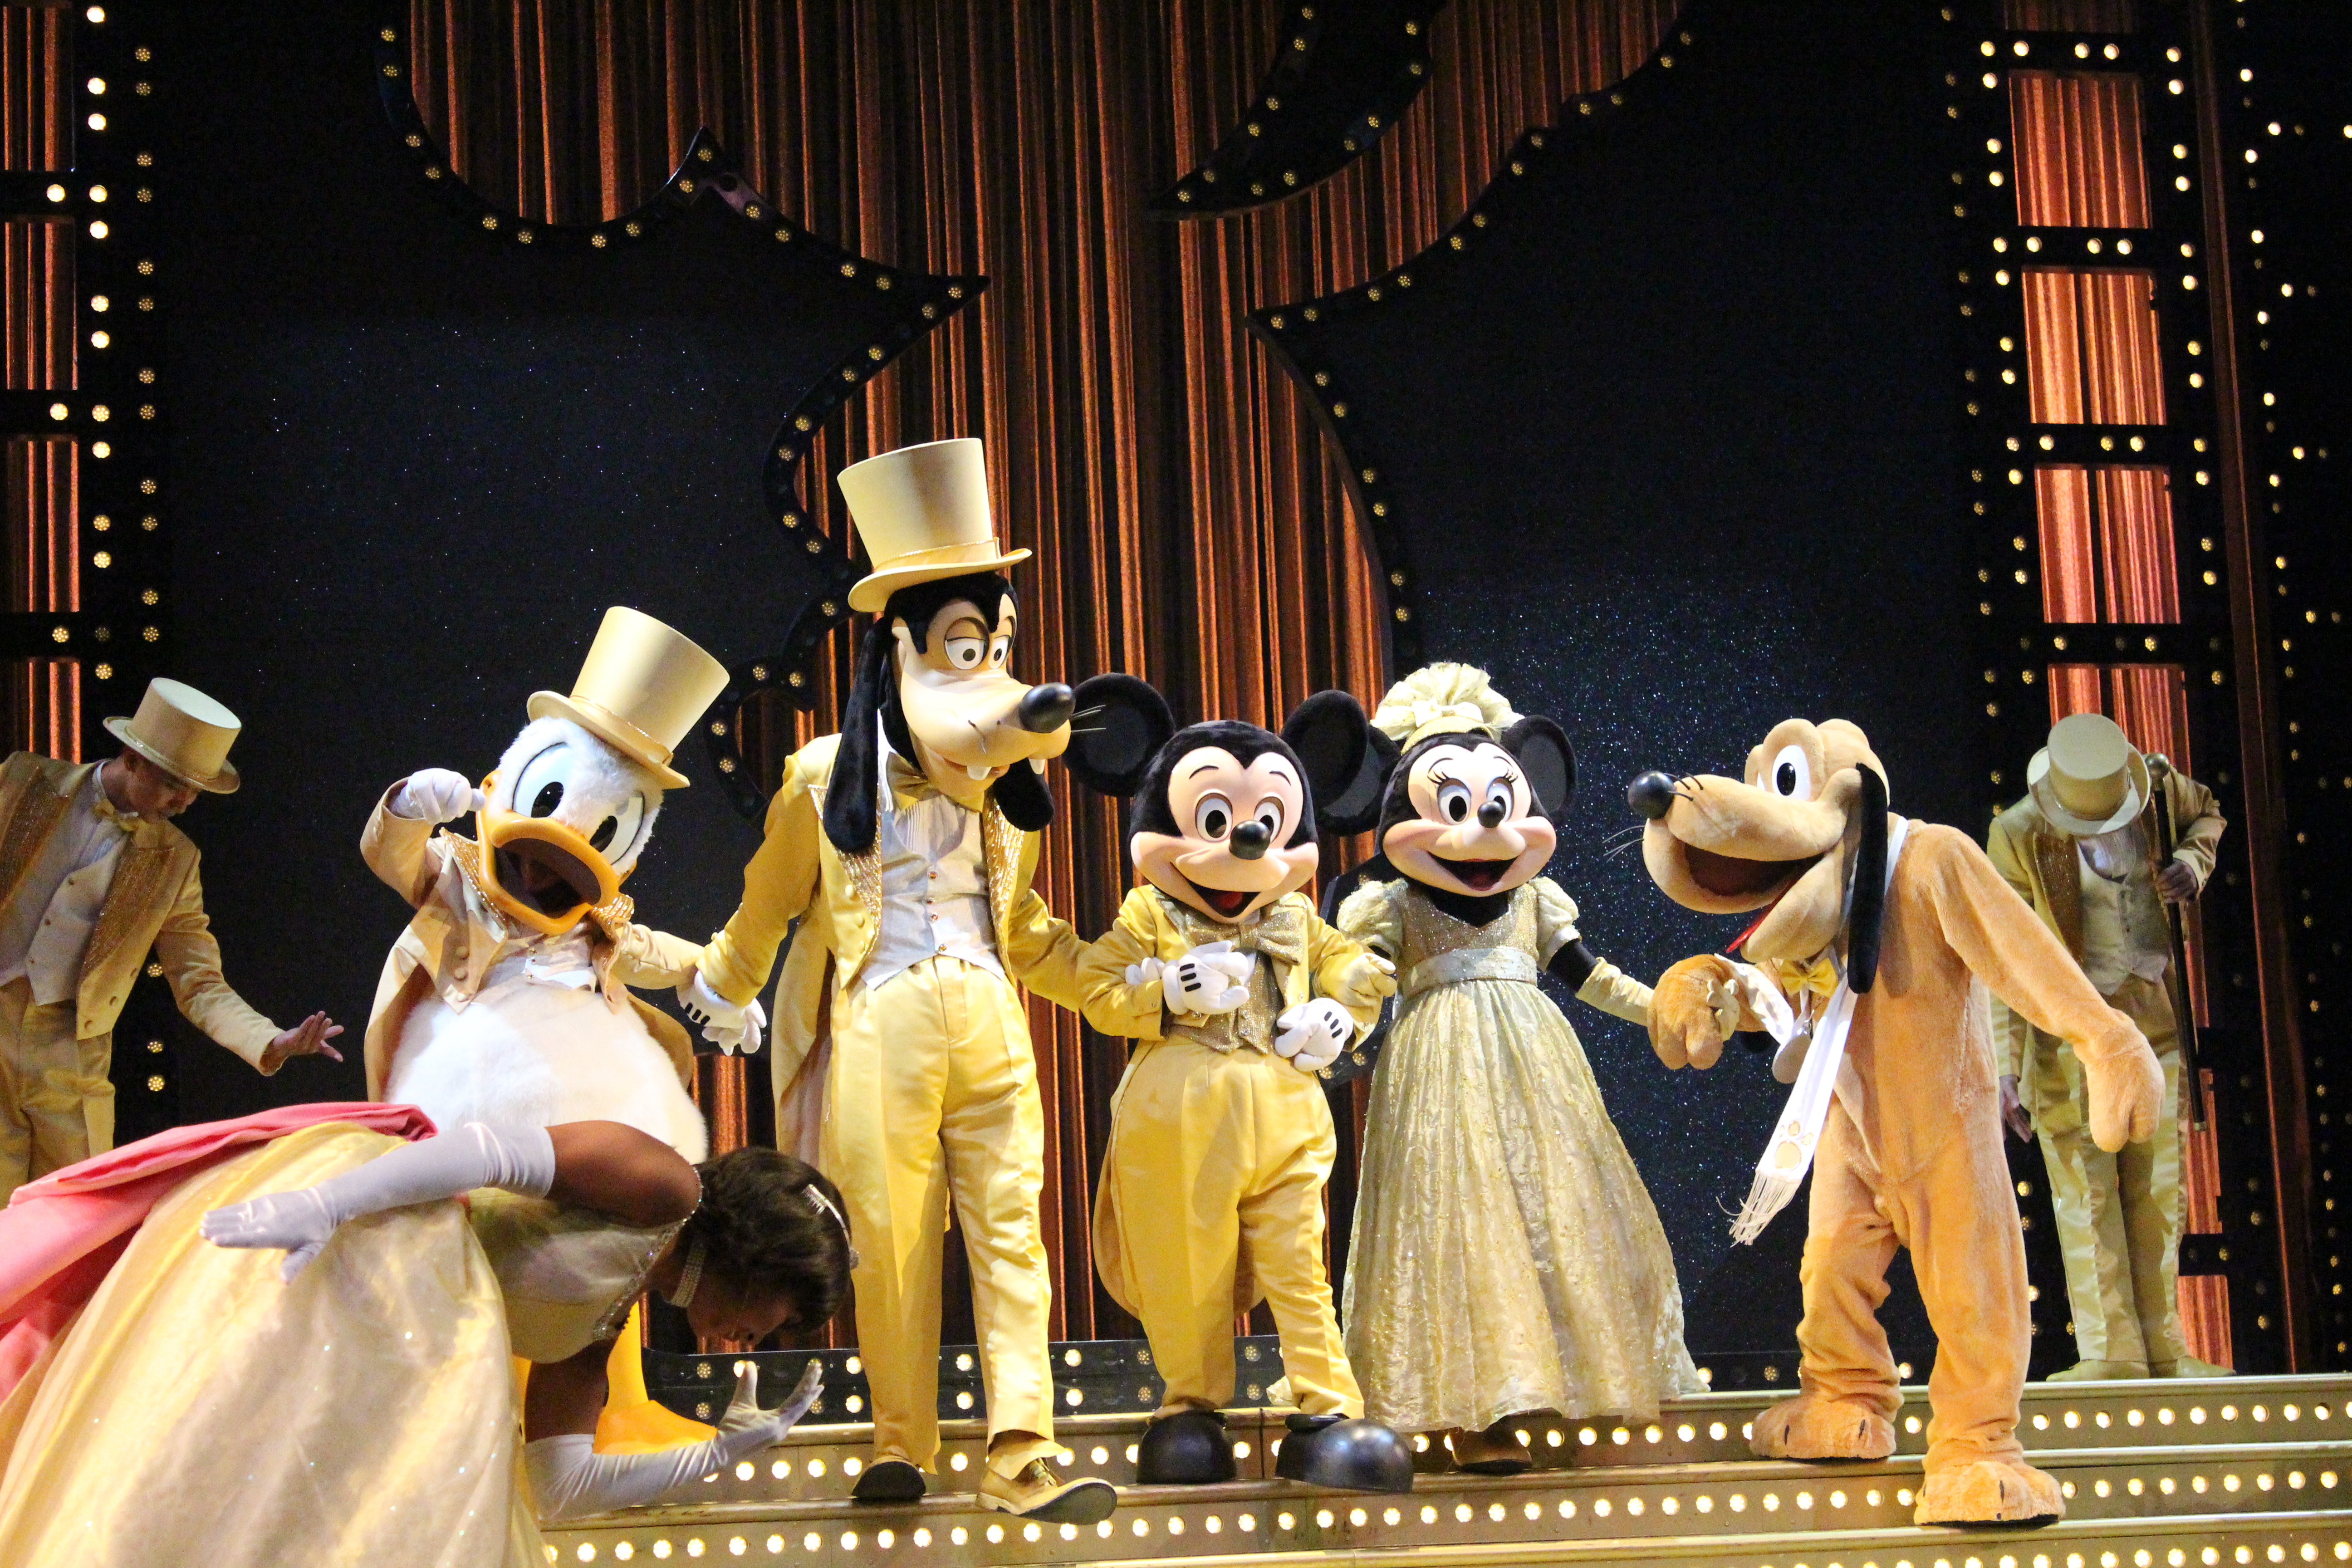 Mickey, Minnie, Pluto, Donald, and Goofy